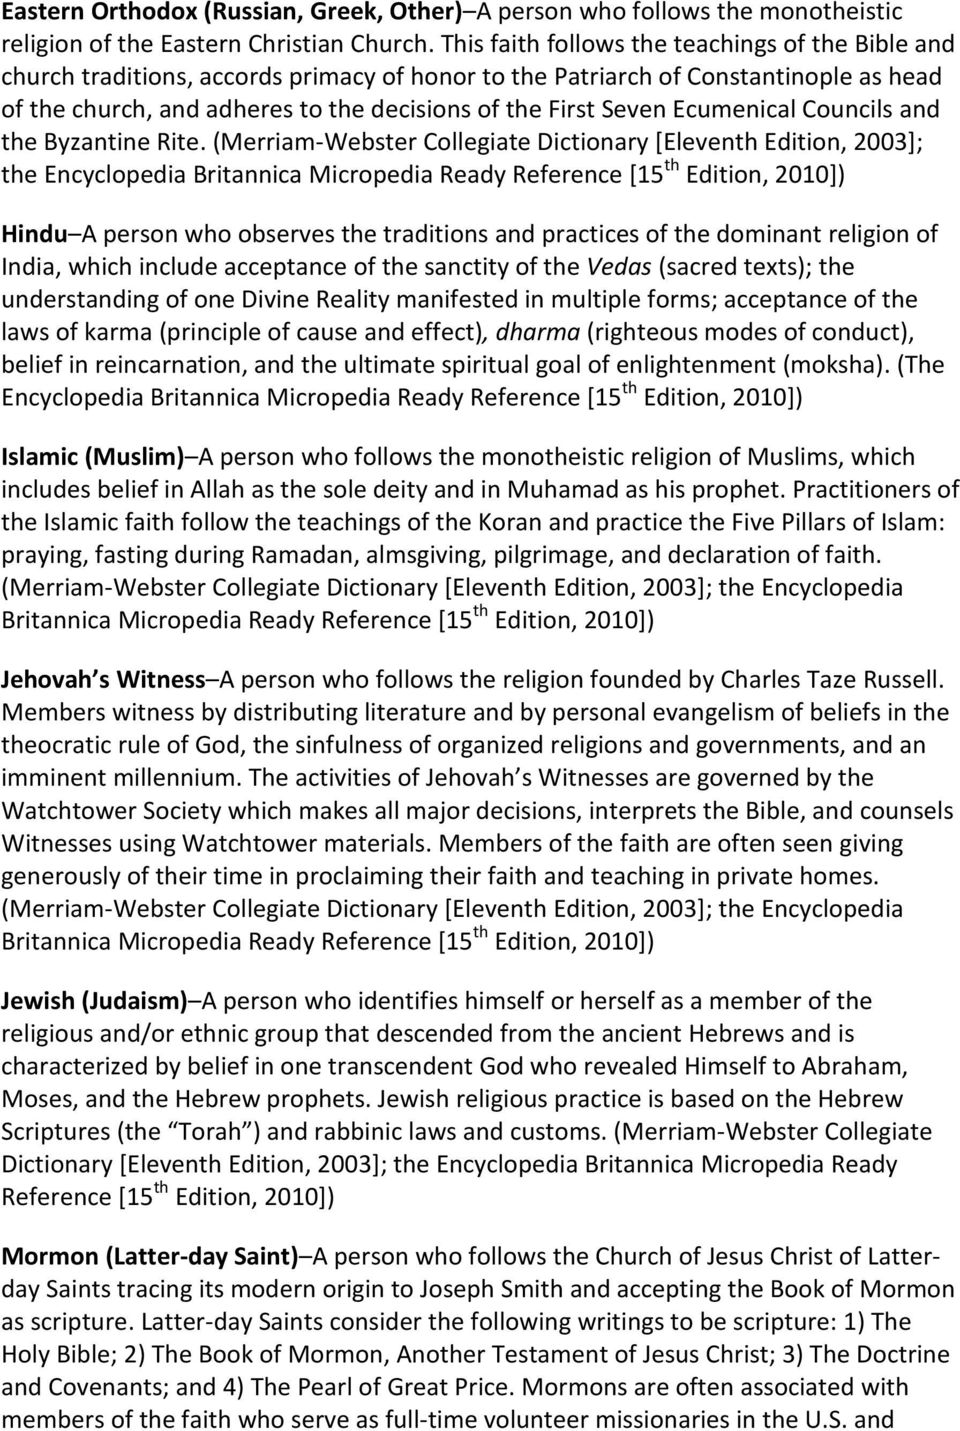 Ecumenical Councils and the Byzantine Rite.